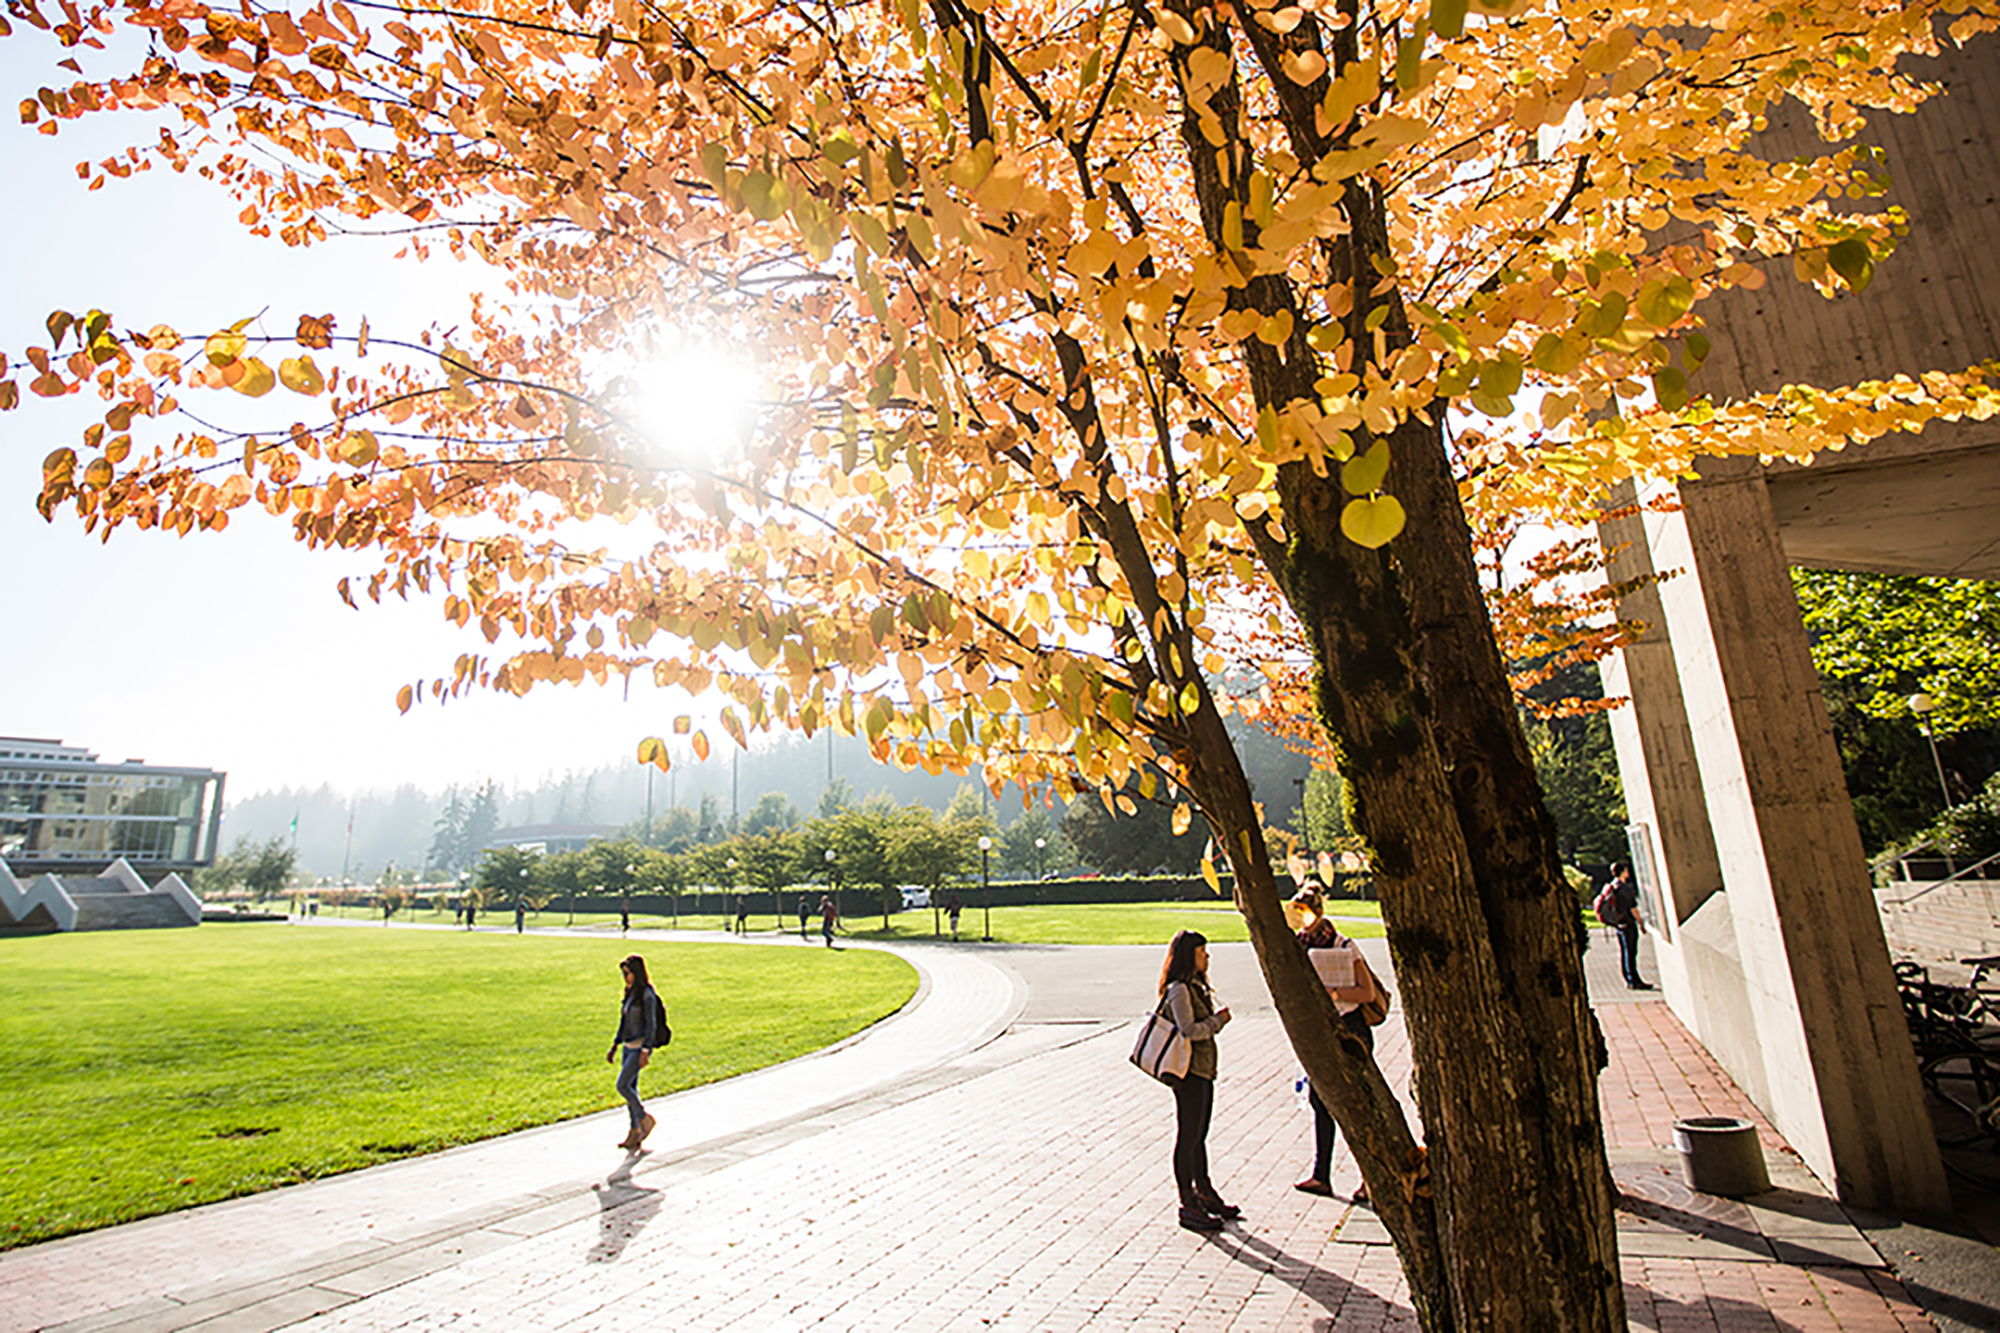 A student walks along a brick path on campus. Above head, a tree with golden and red leaves stretches across the top of the frame, with late afternoon sun peaking through the branches.